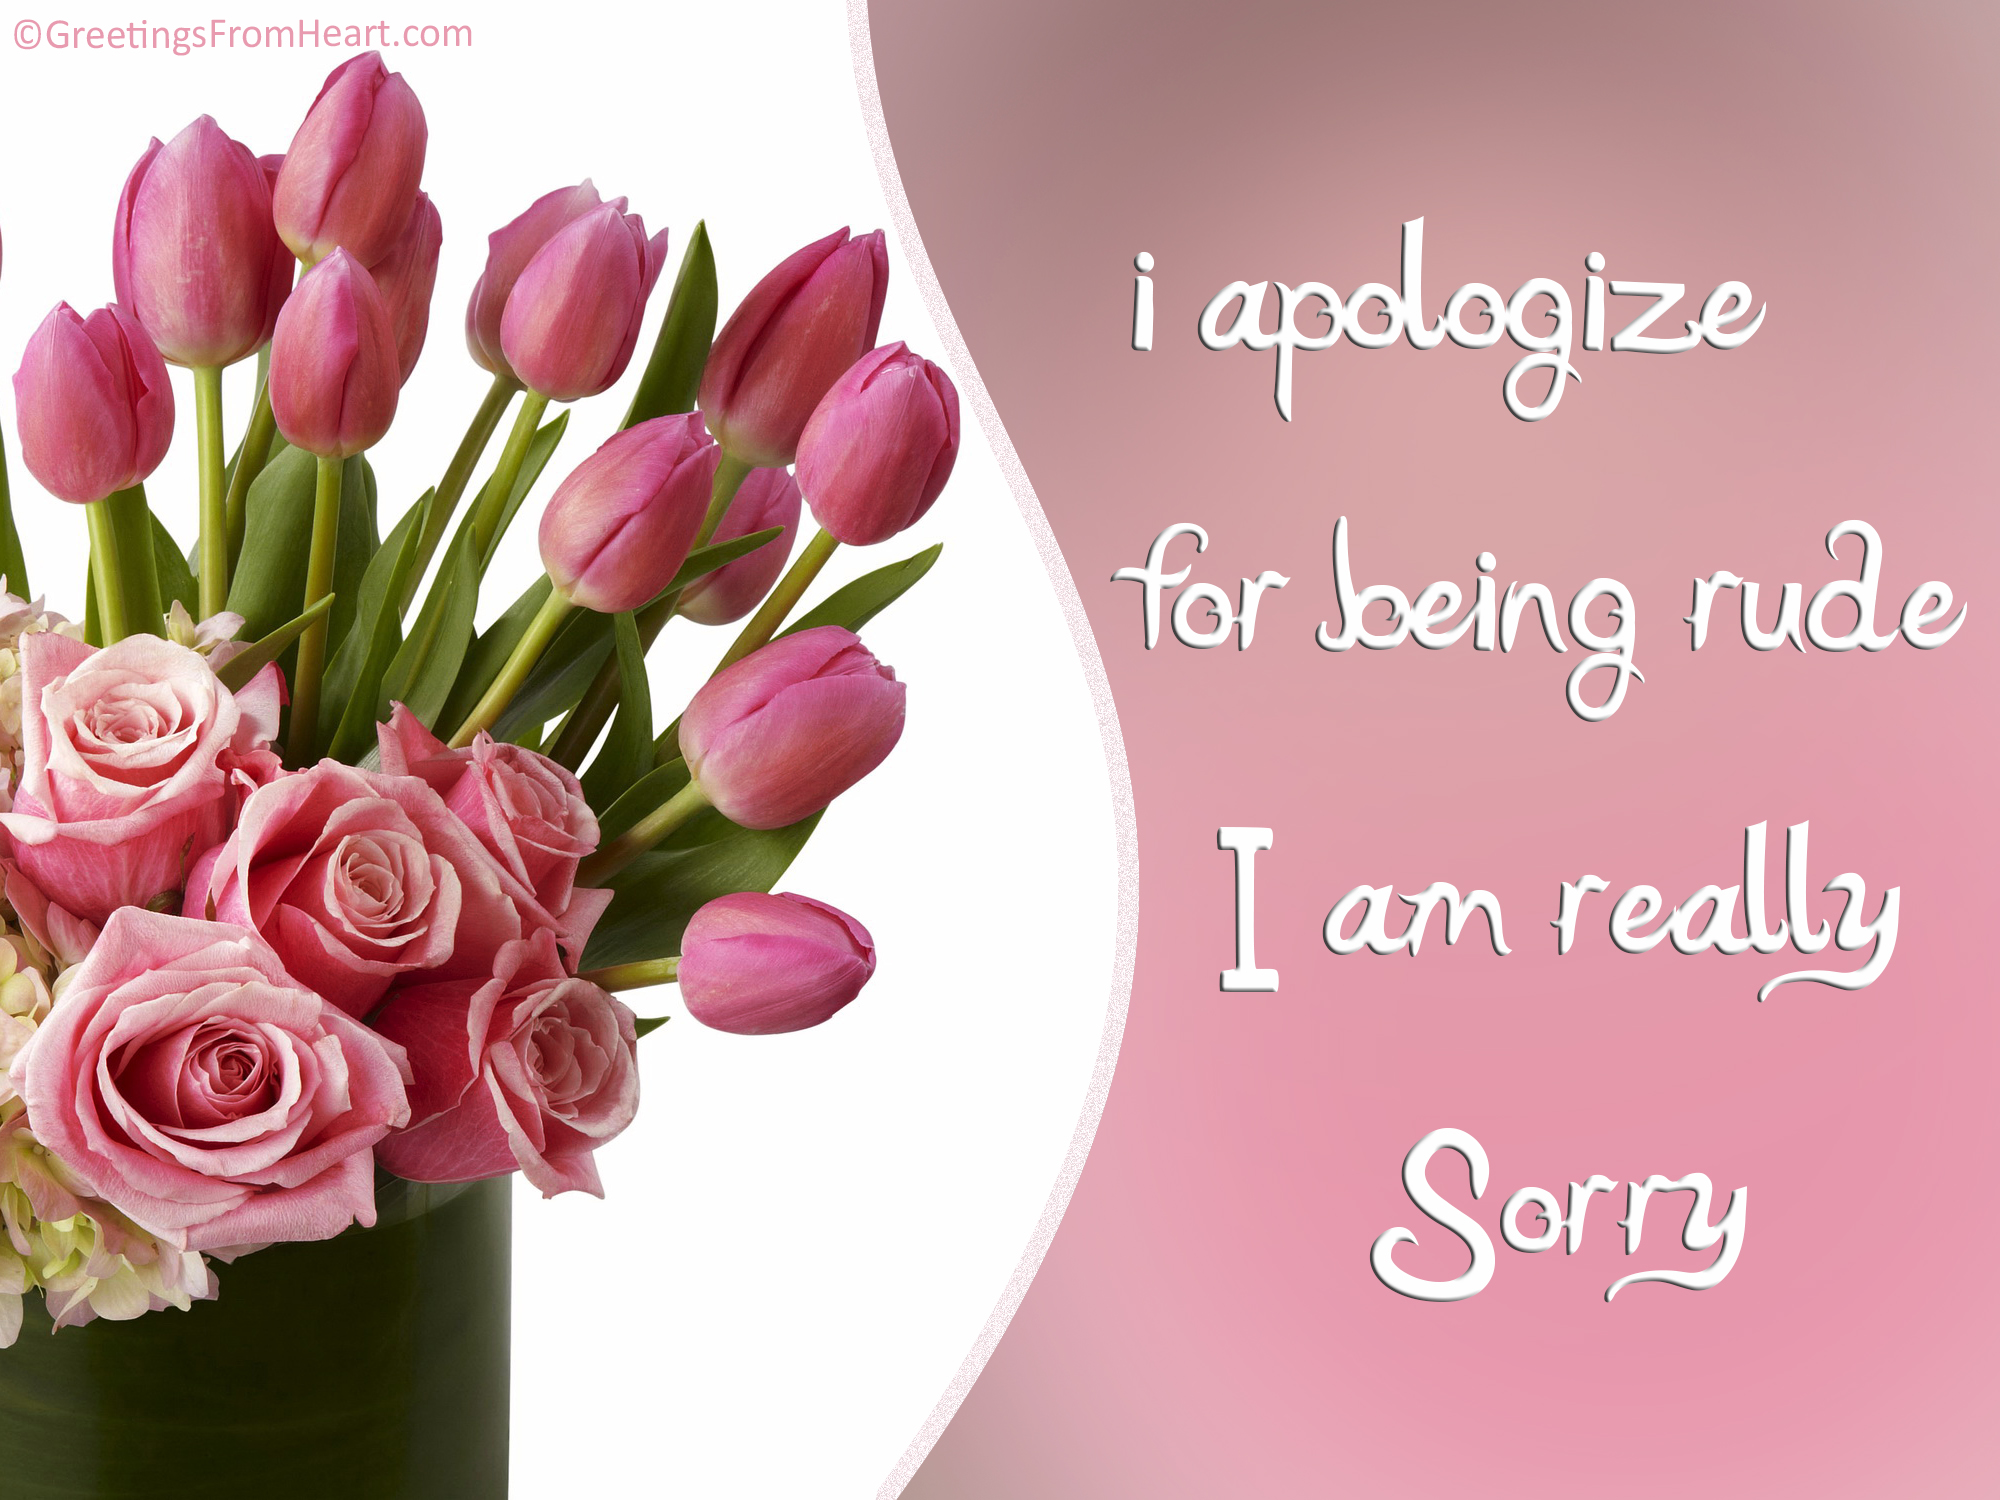 Sorry apologize for being rude cards